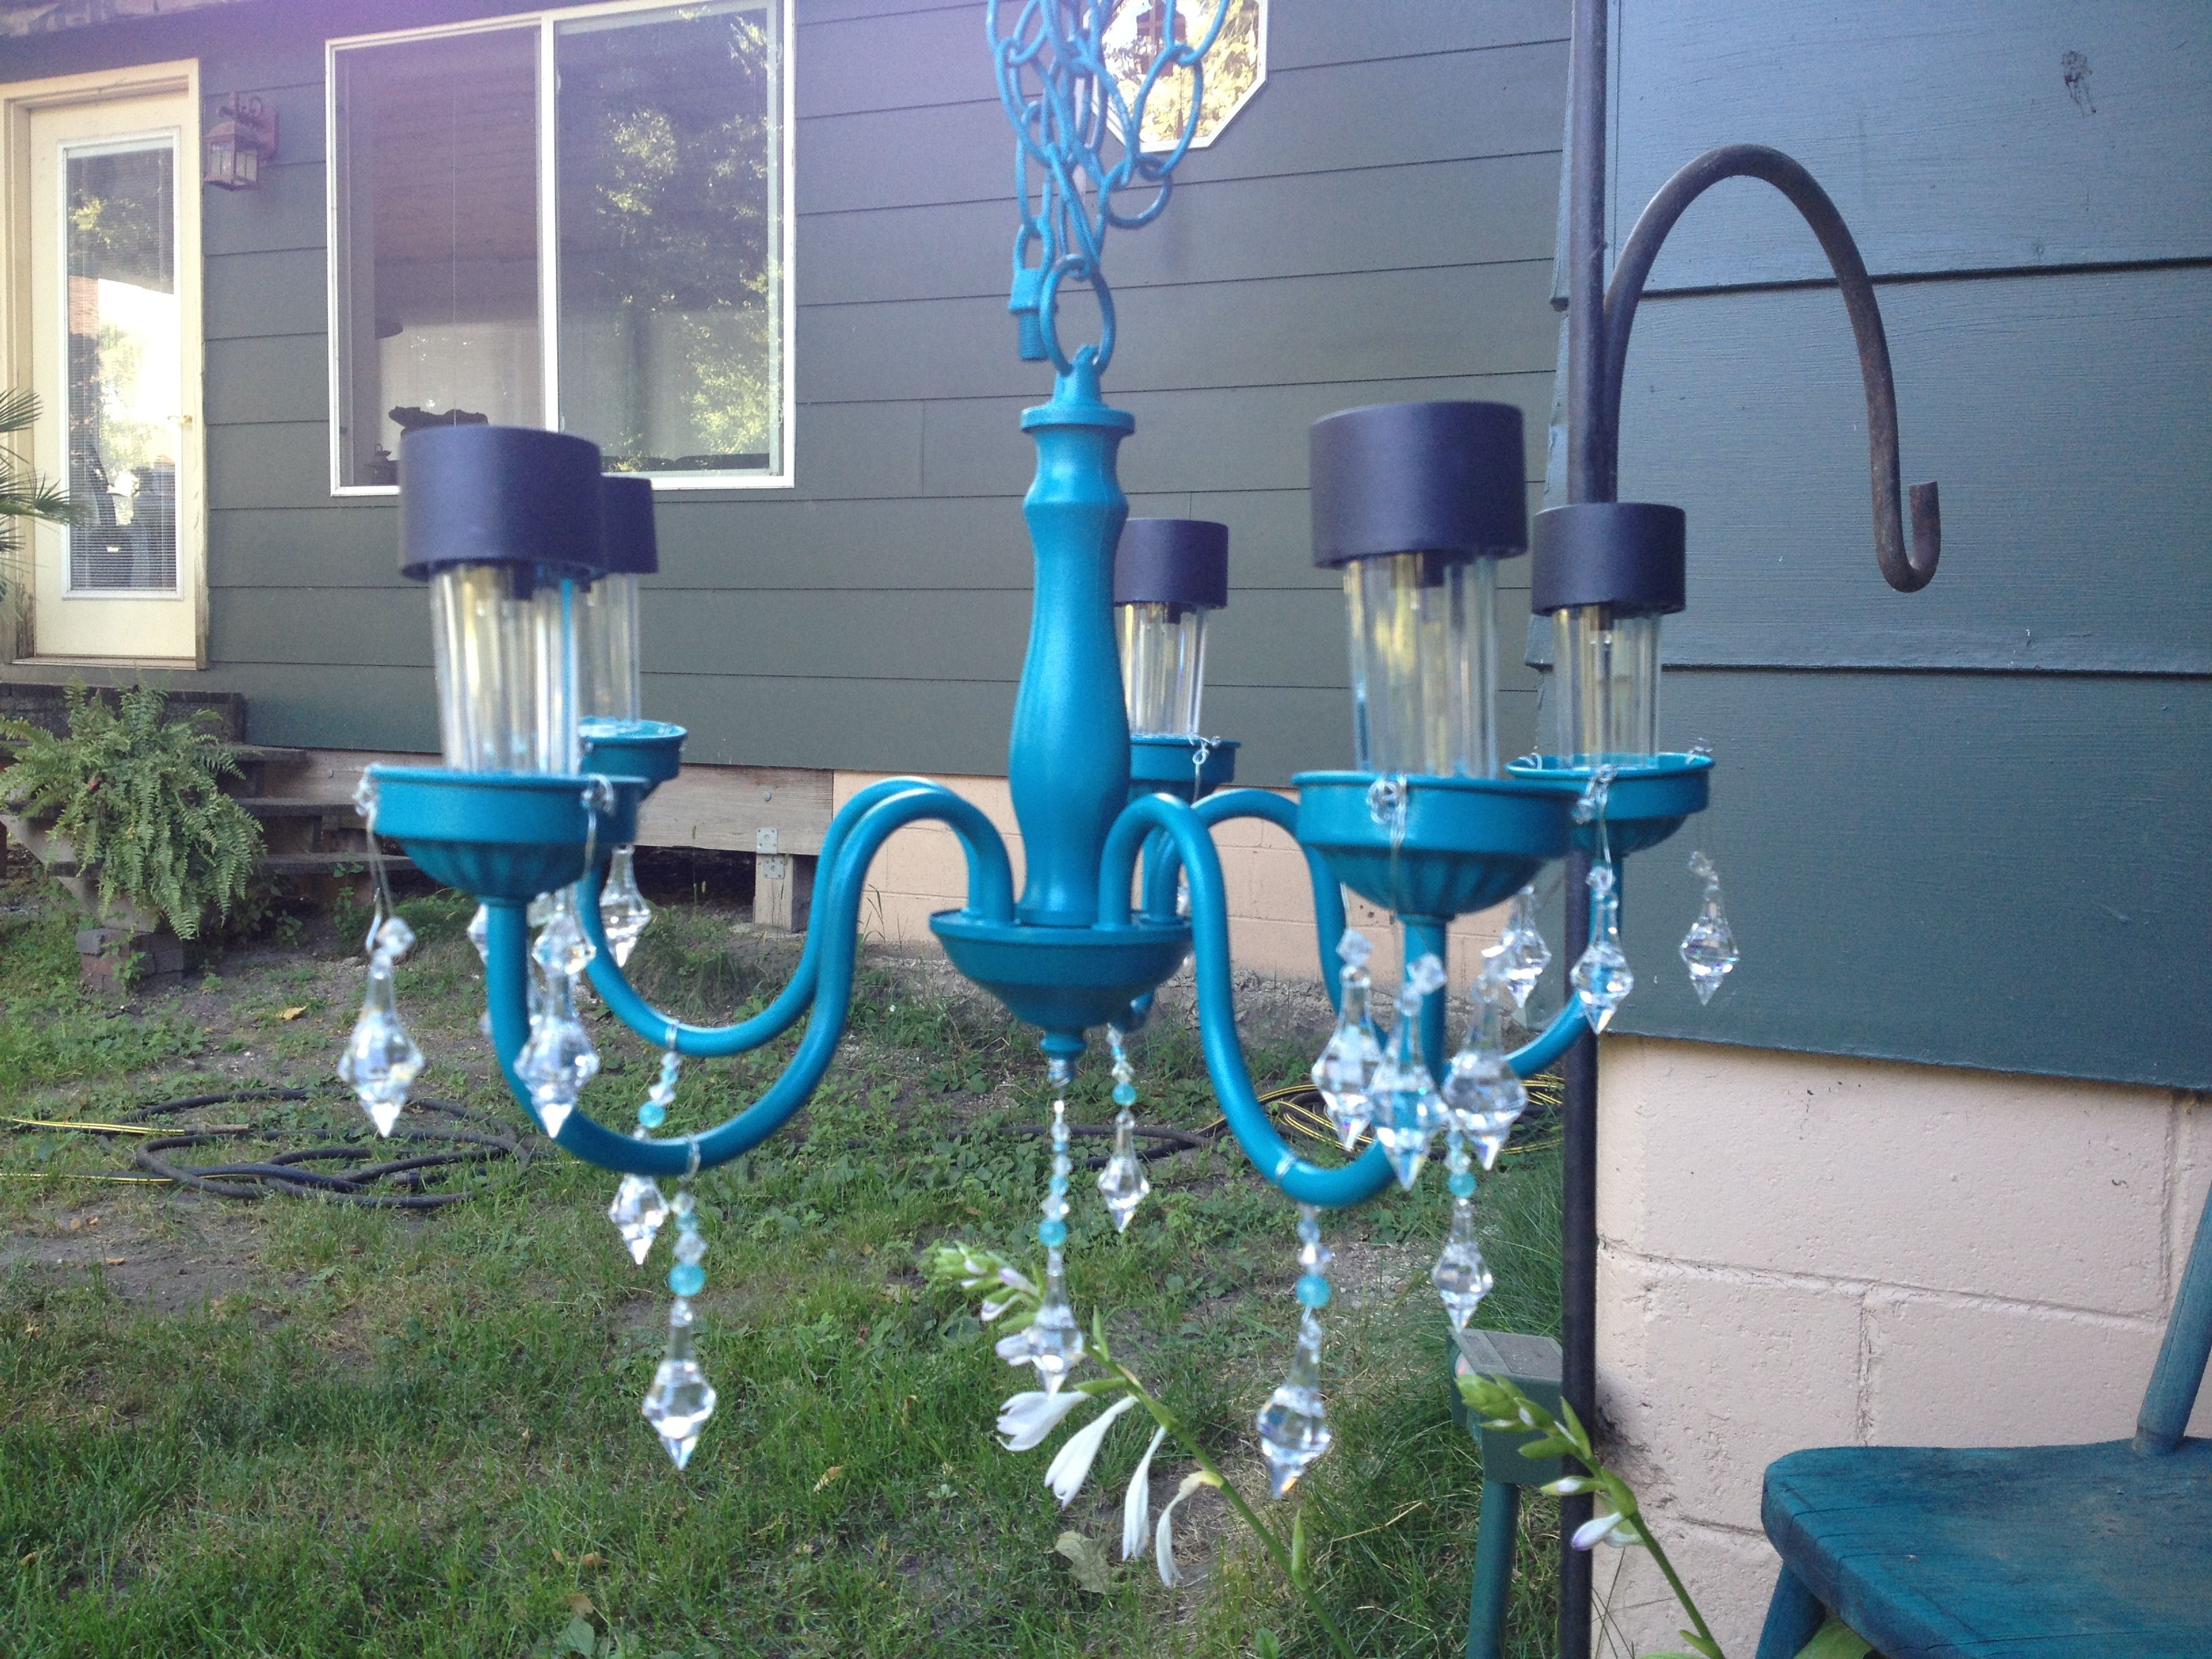 Solarlicht Garten Solar Light Chandelier Things I 39ve Done Pinterest